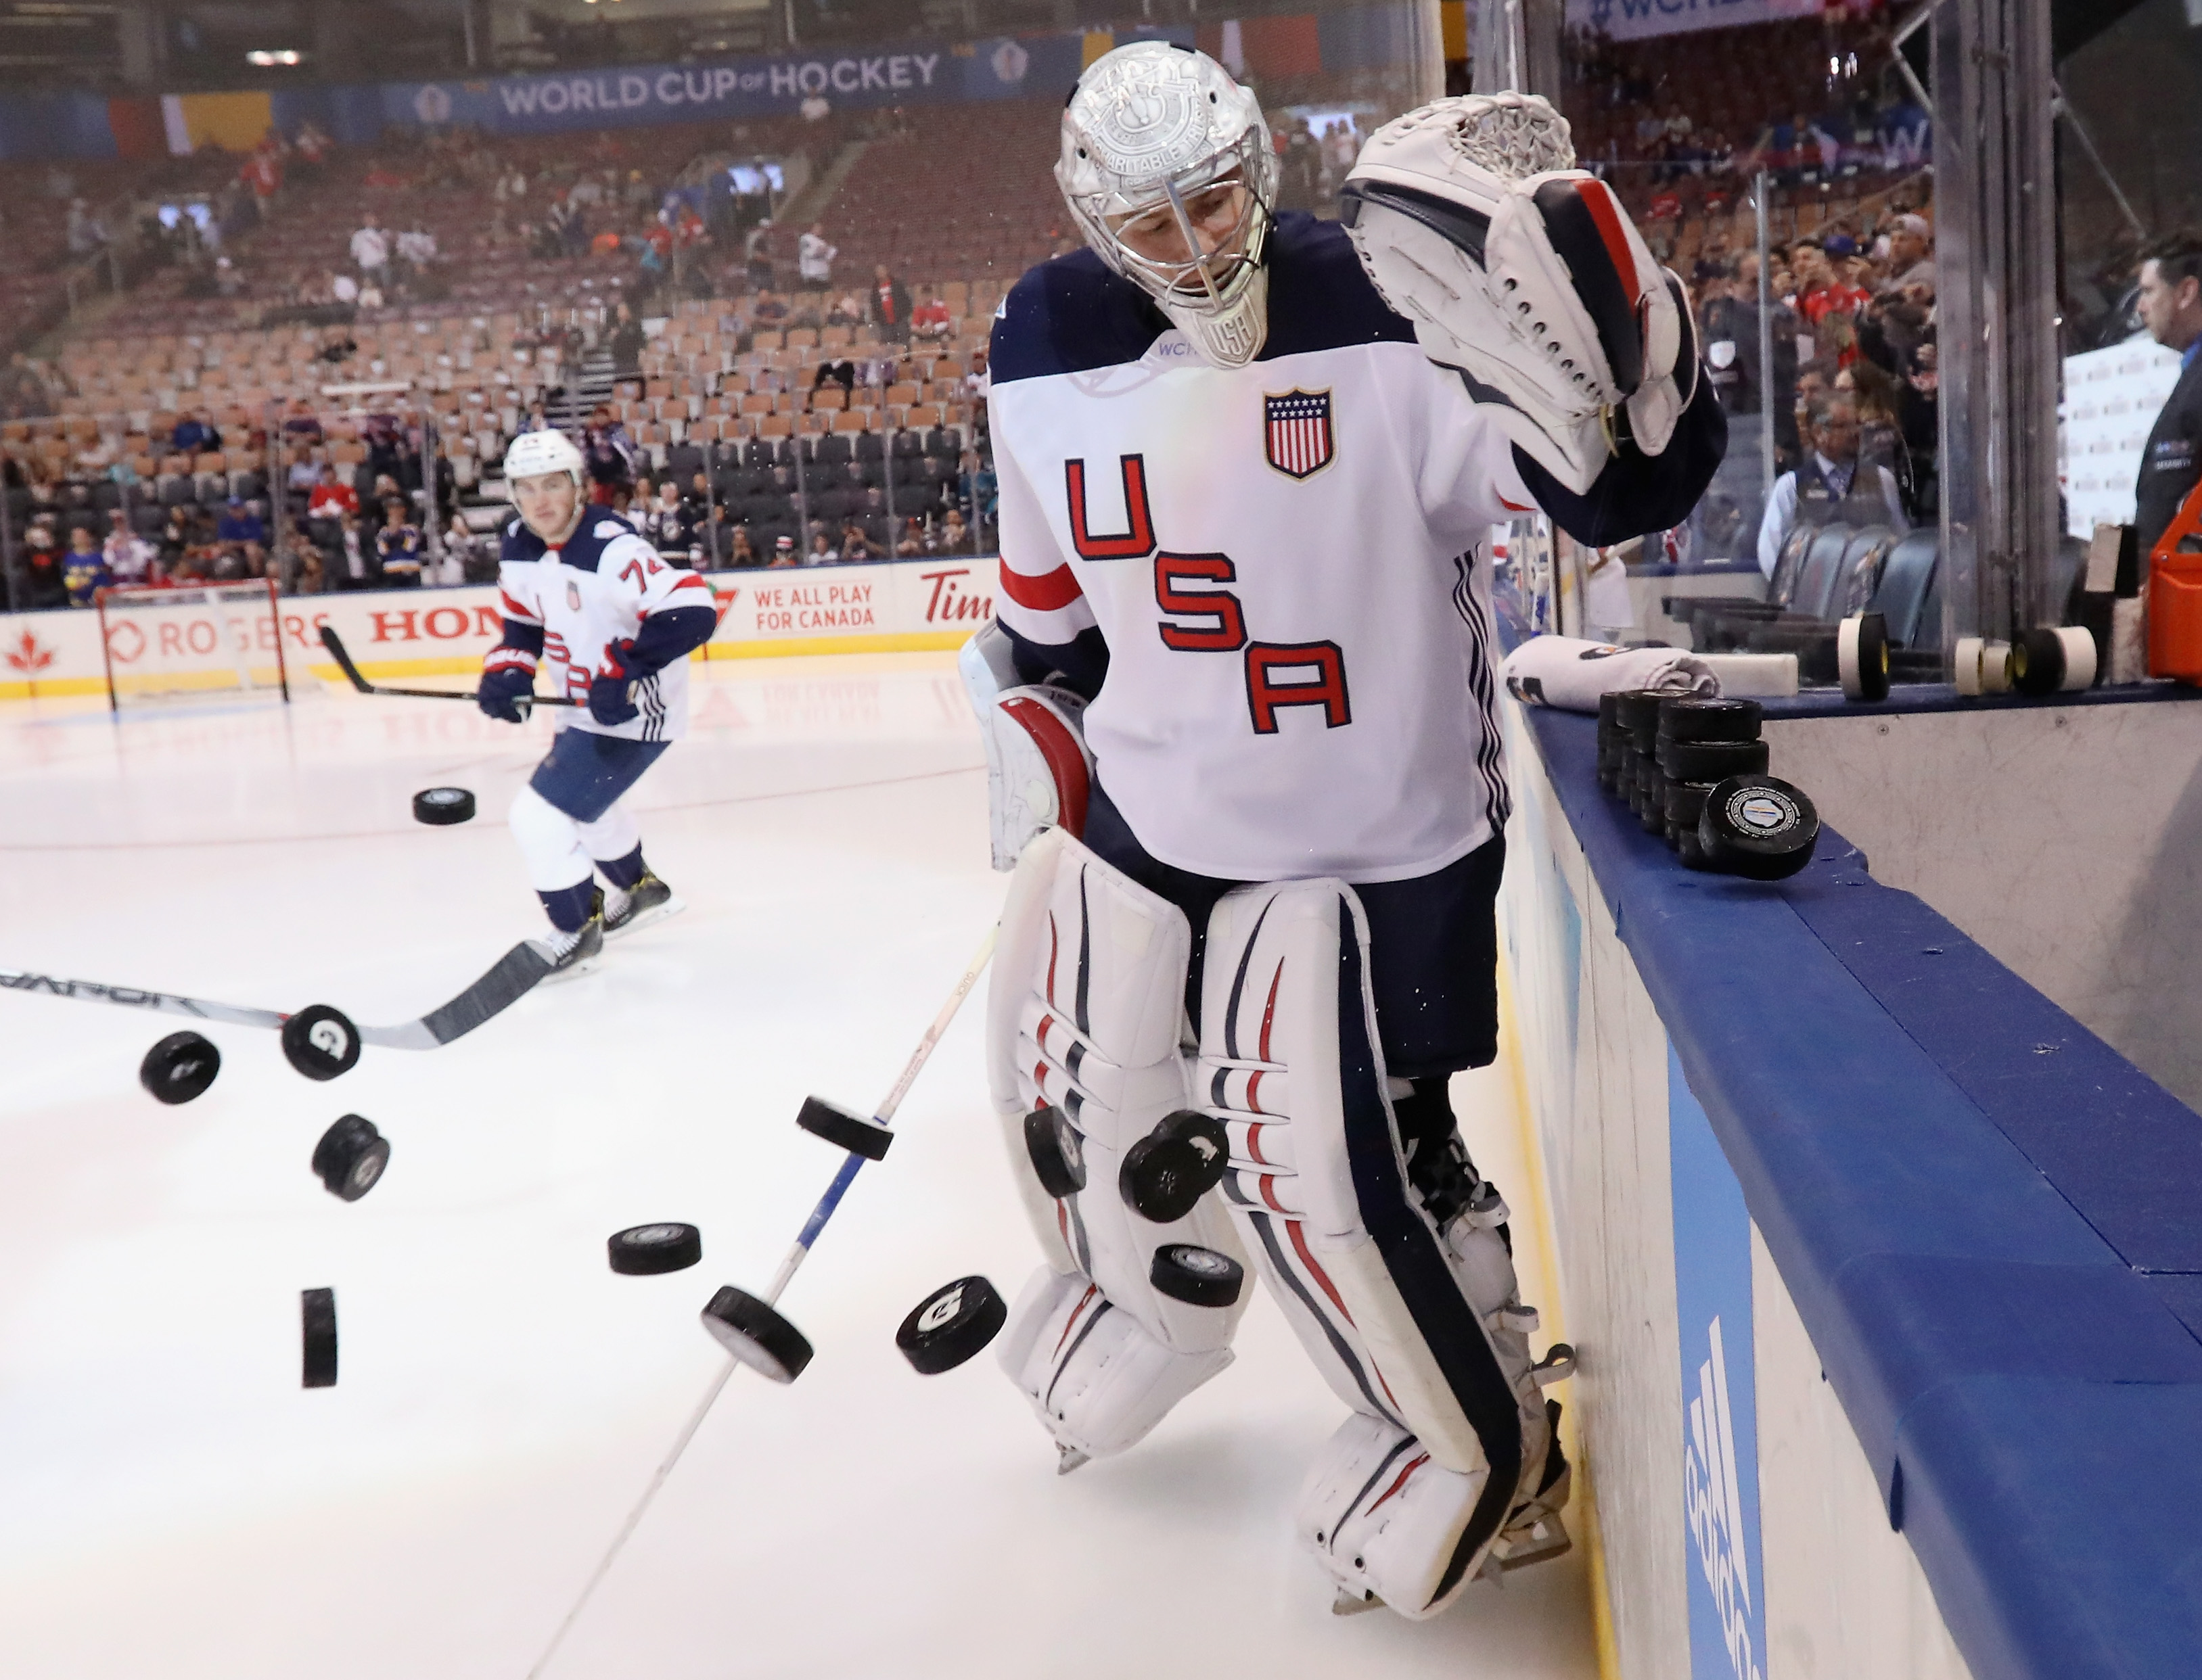 World Cup Of Hockey 2016 - United States v Team Europe